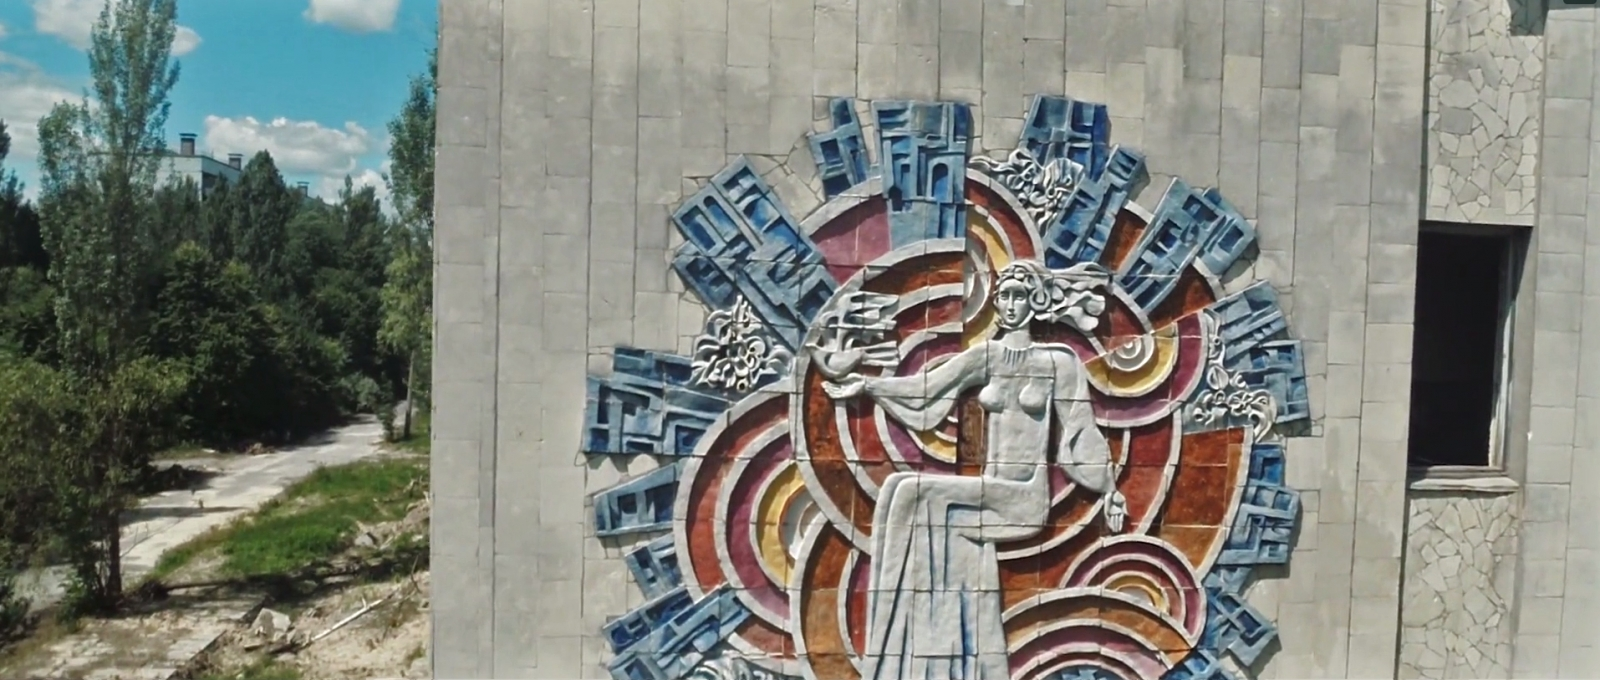 A mural painted into the side of a building in Pripyat